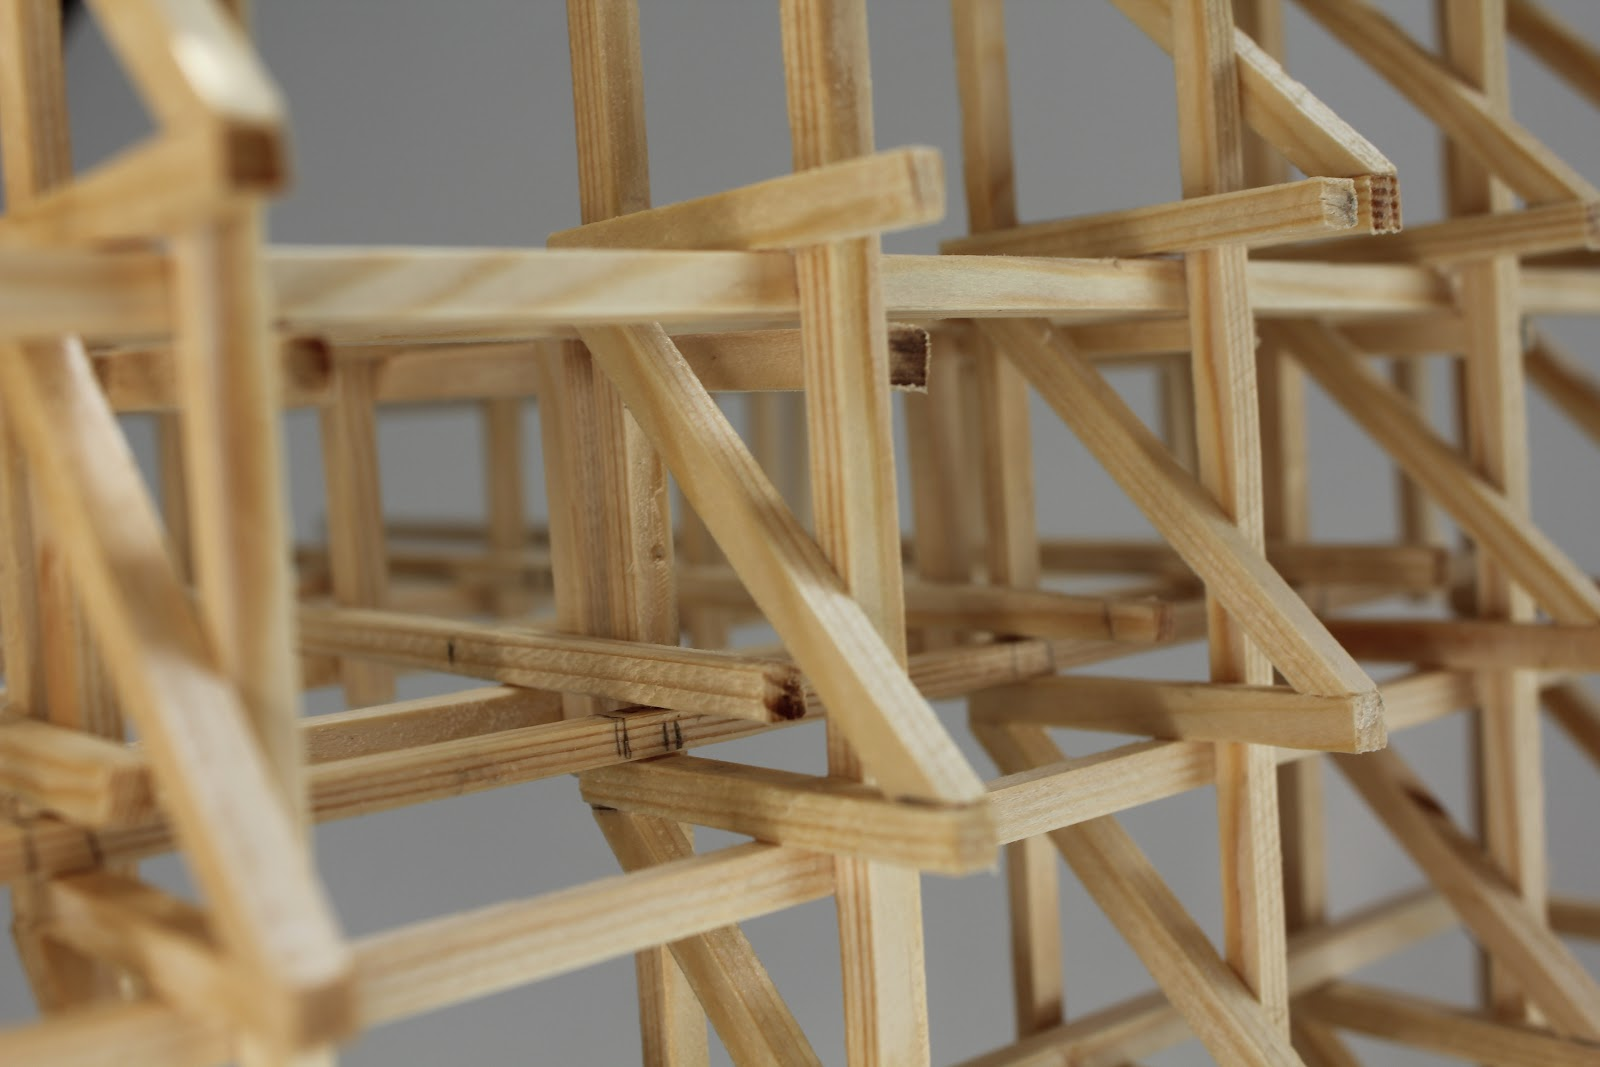 My Design Thesis Timber Structure Josh Heasman